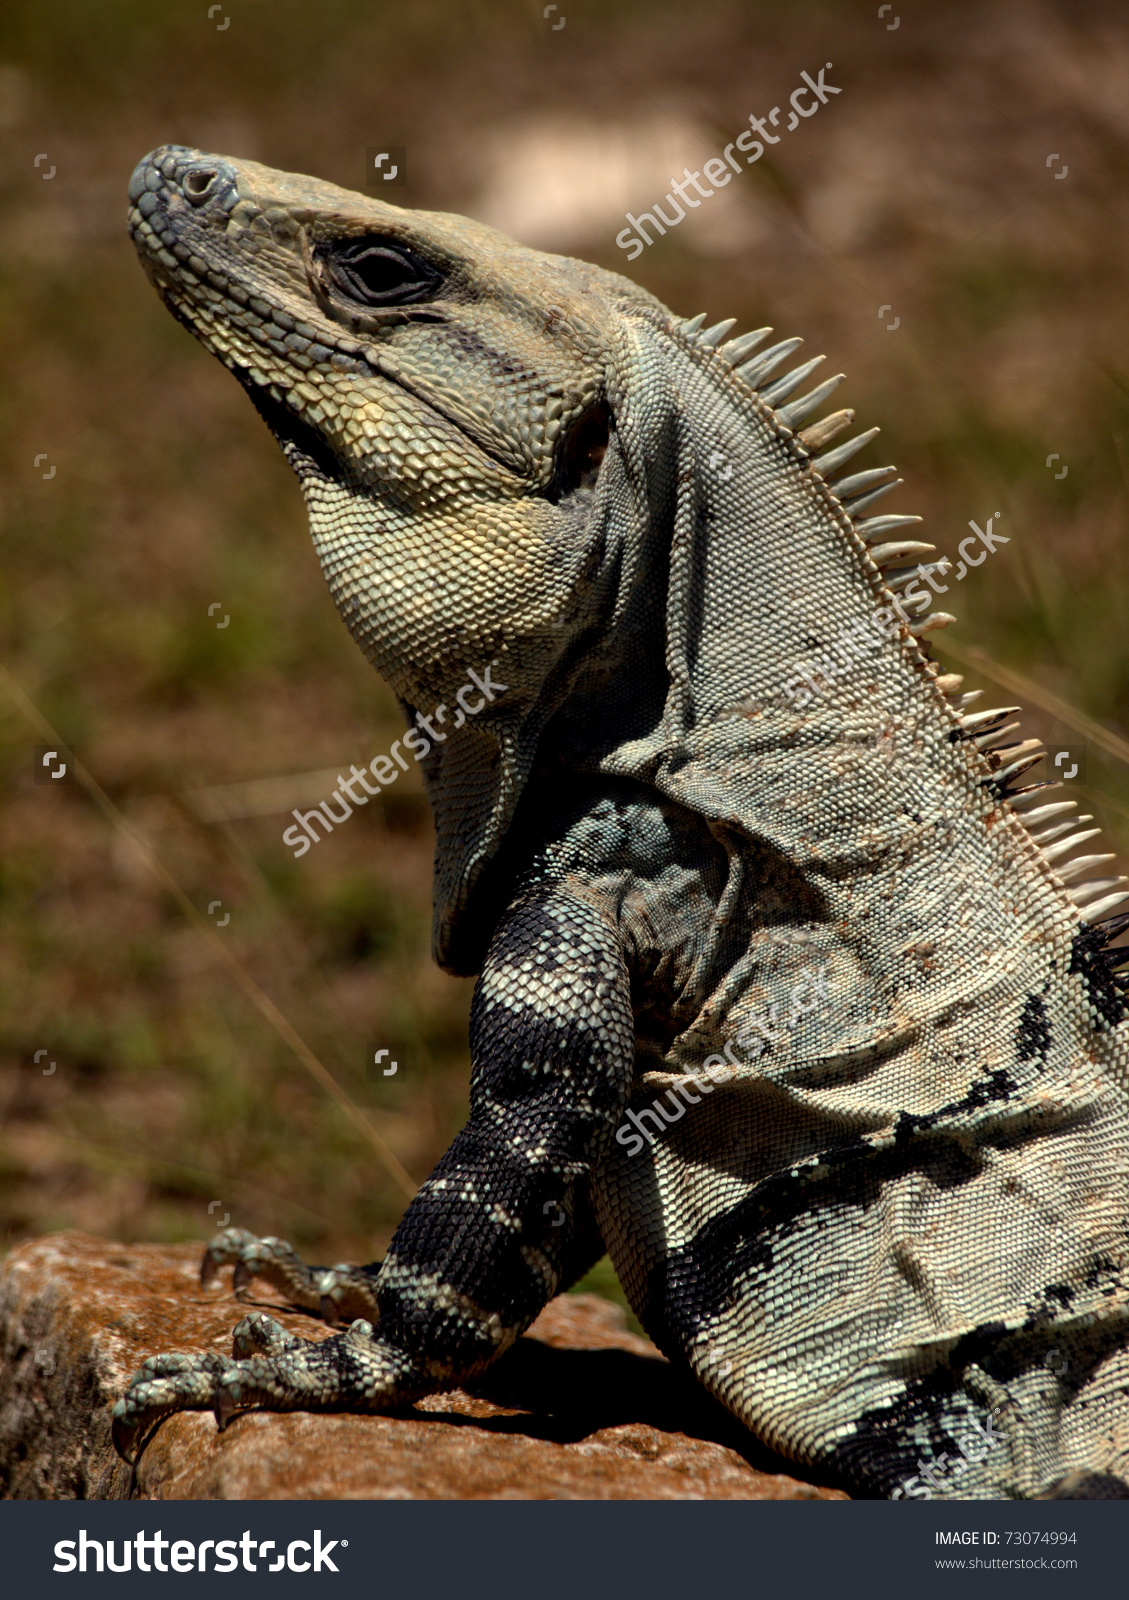 Black Spiny Tailed Iguana clipart #2, Download drawings